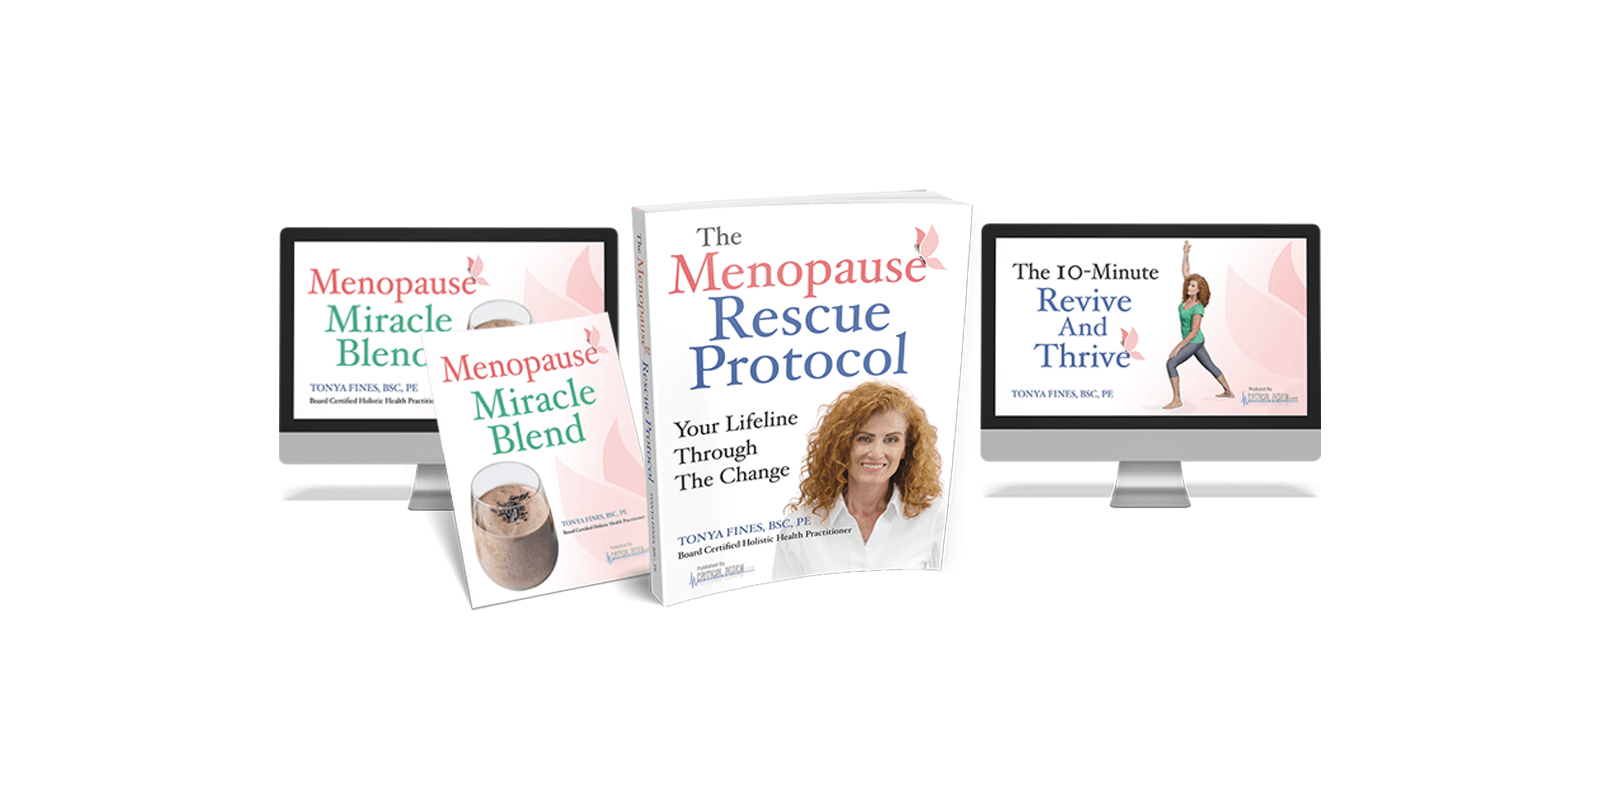 Menopause Rescue Protocol review